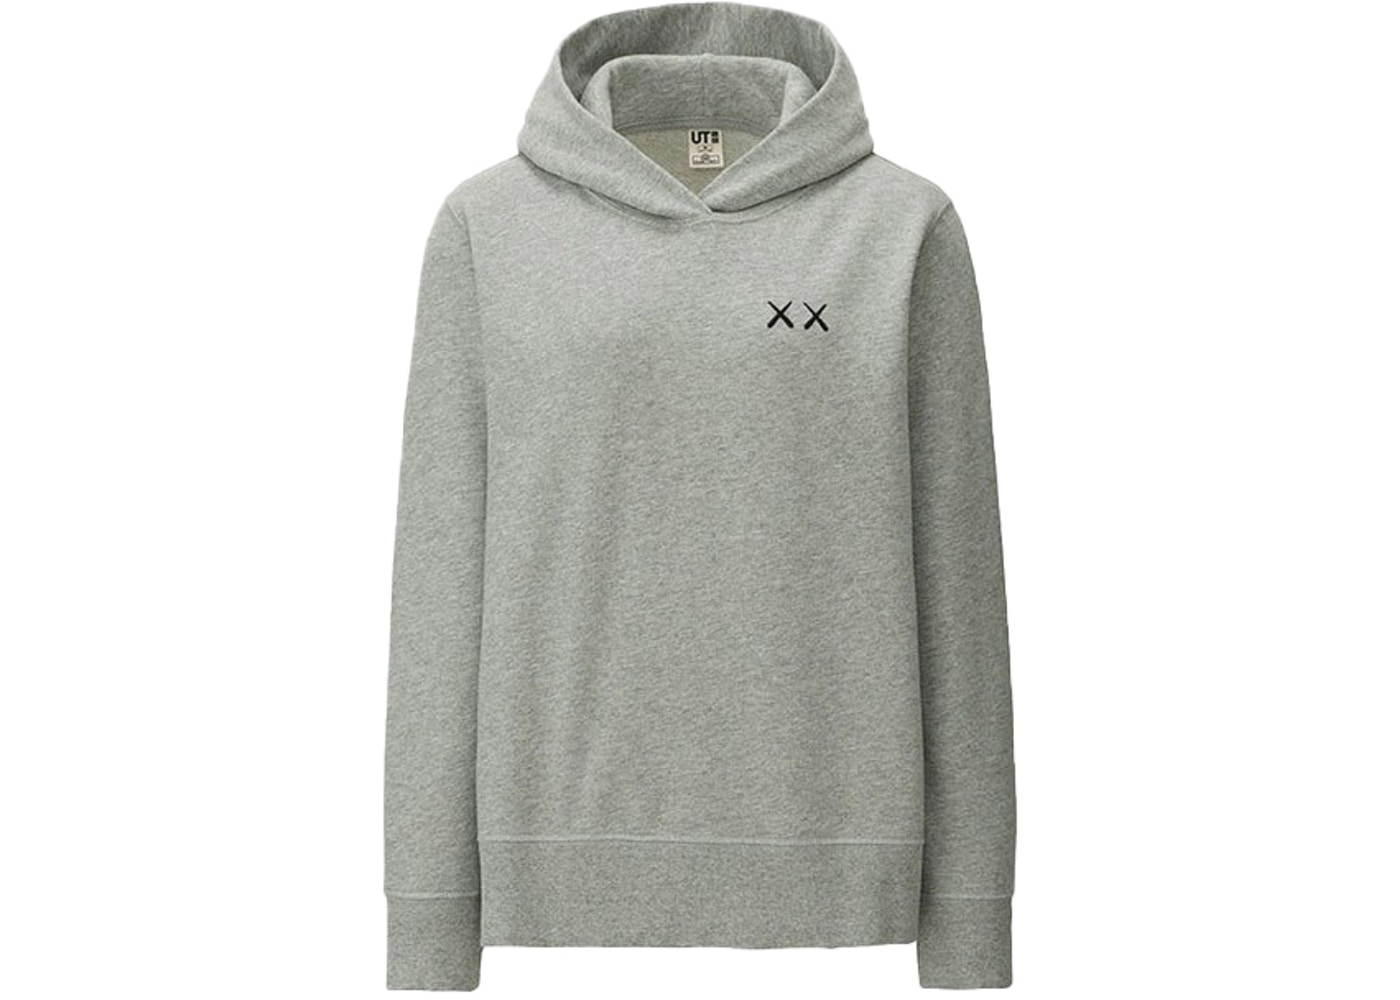 free delivery sale online purchase cheap KAWS x Uniqlo x Sesame Street XX Hoodie (US Womens Sizing) Gray